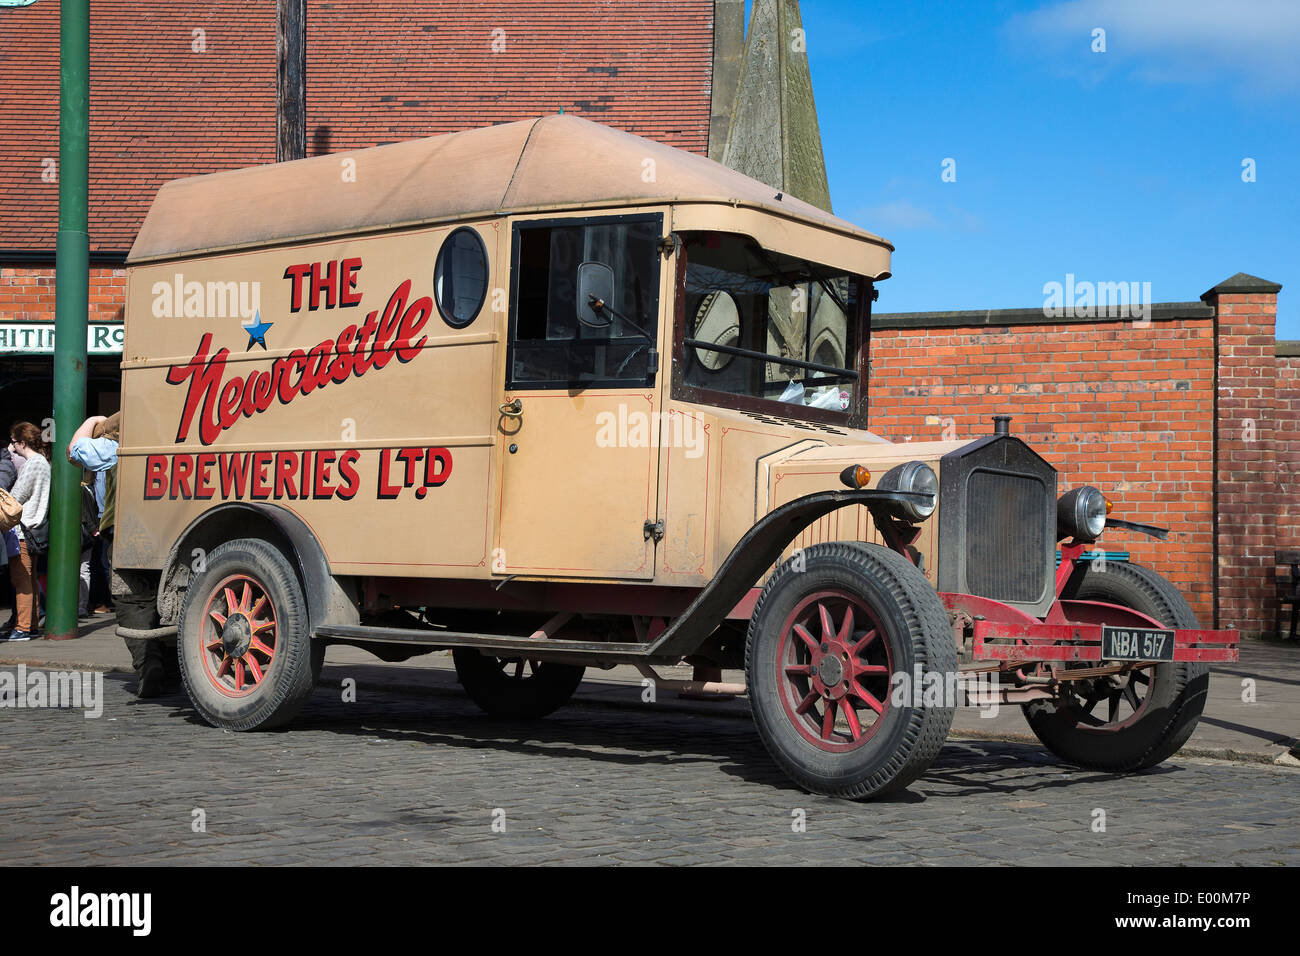 Newcastle Breweries vintage vehicle at the Beamish Museum, County Durham, England - Stock Image